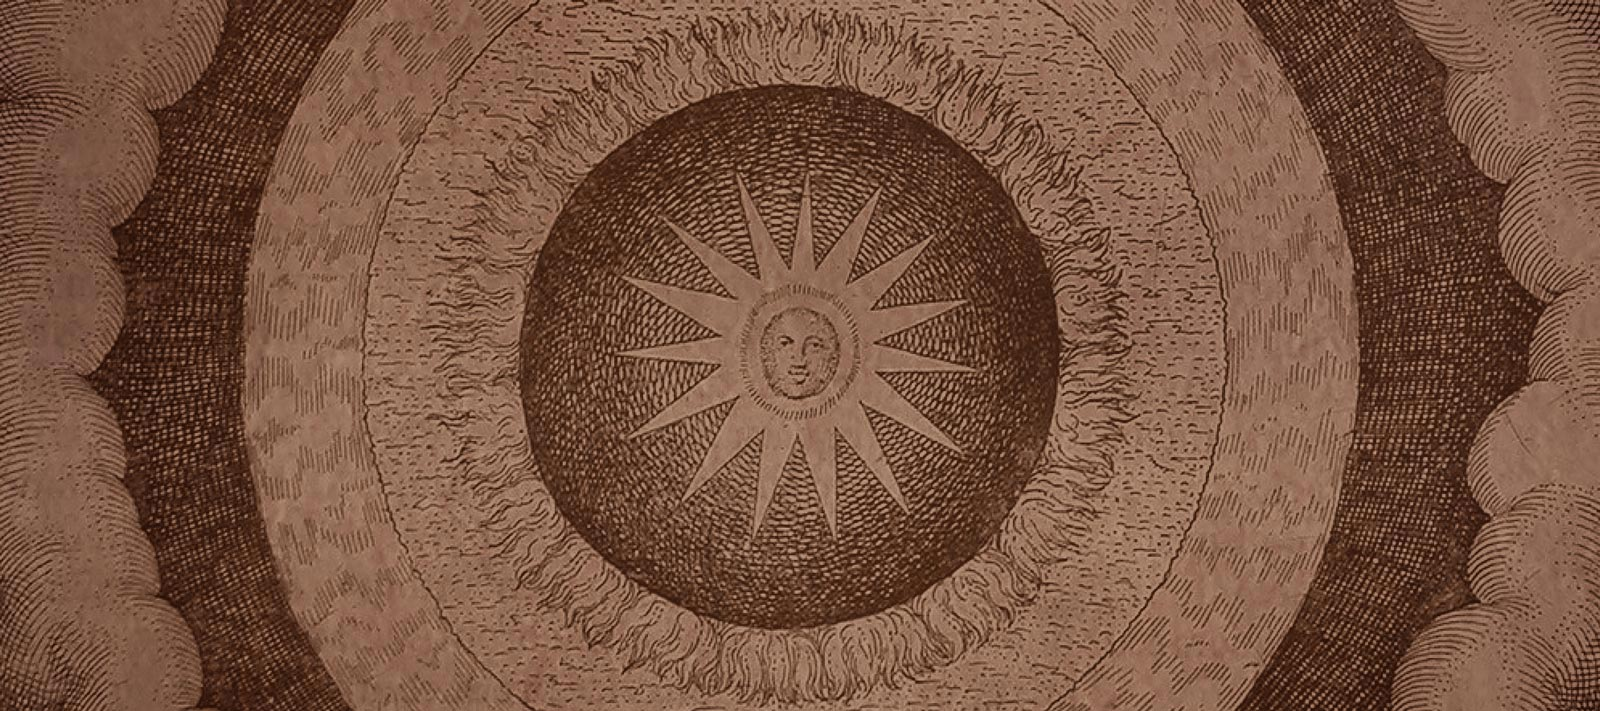 Astrology for Beginners: Sun Signs